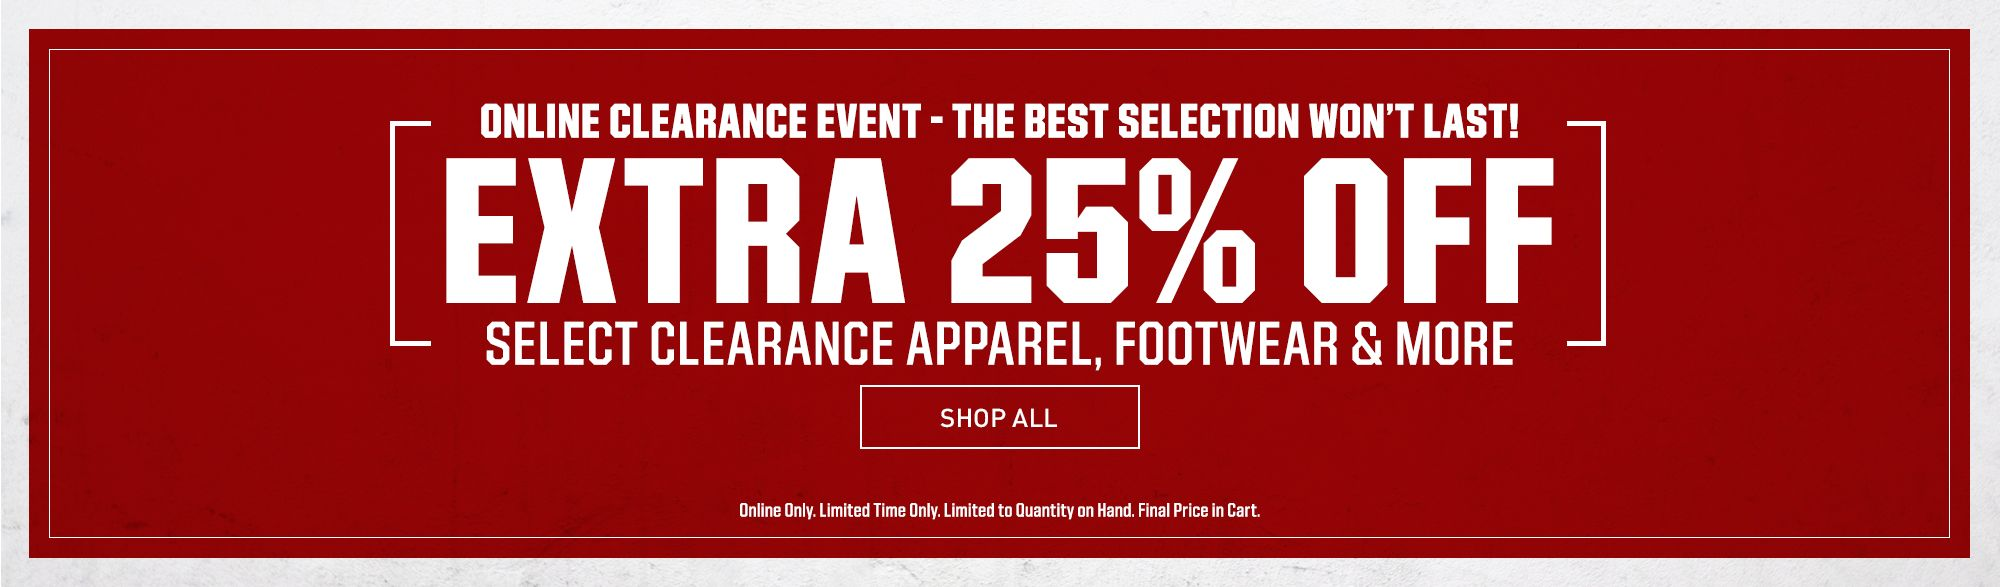 Extra 25% Off | The Best Selection Won't Last